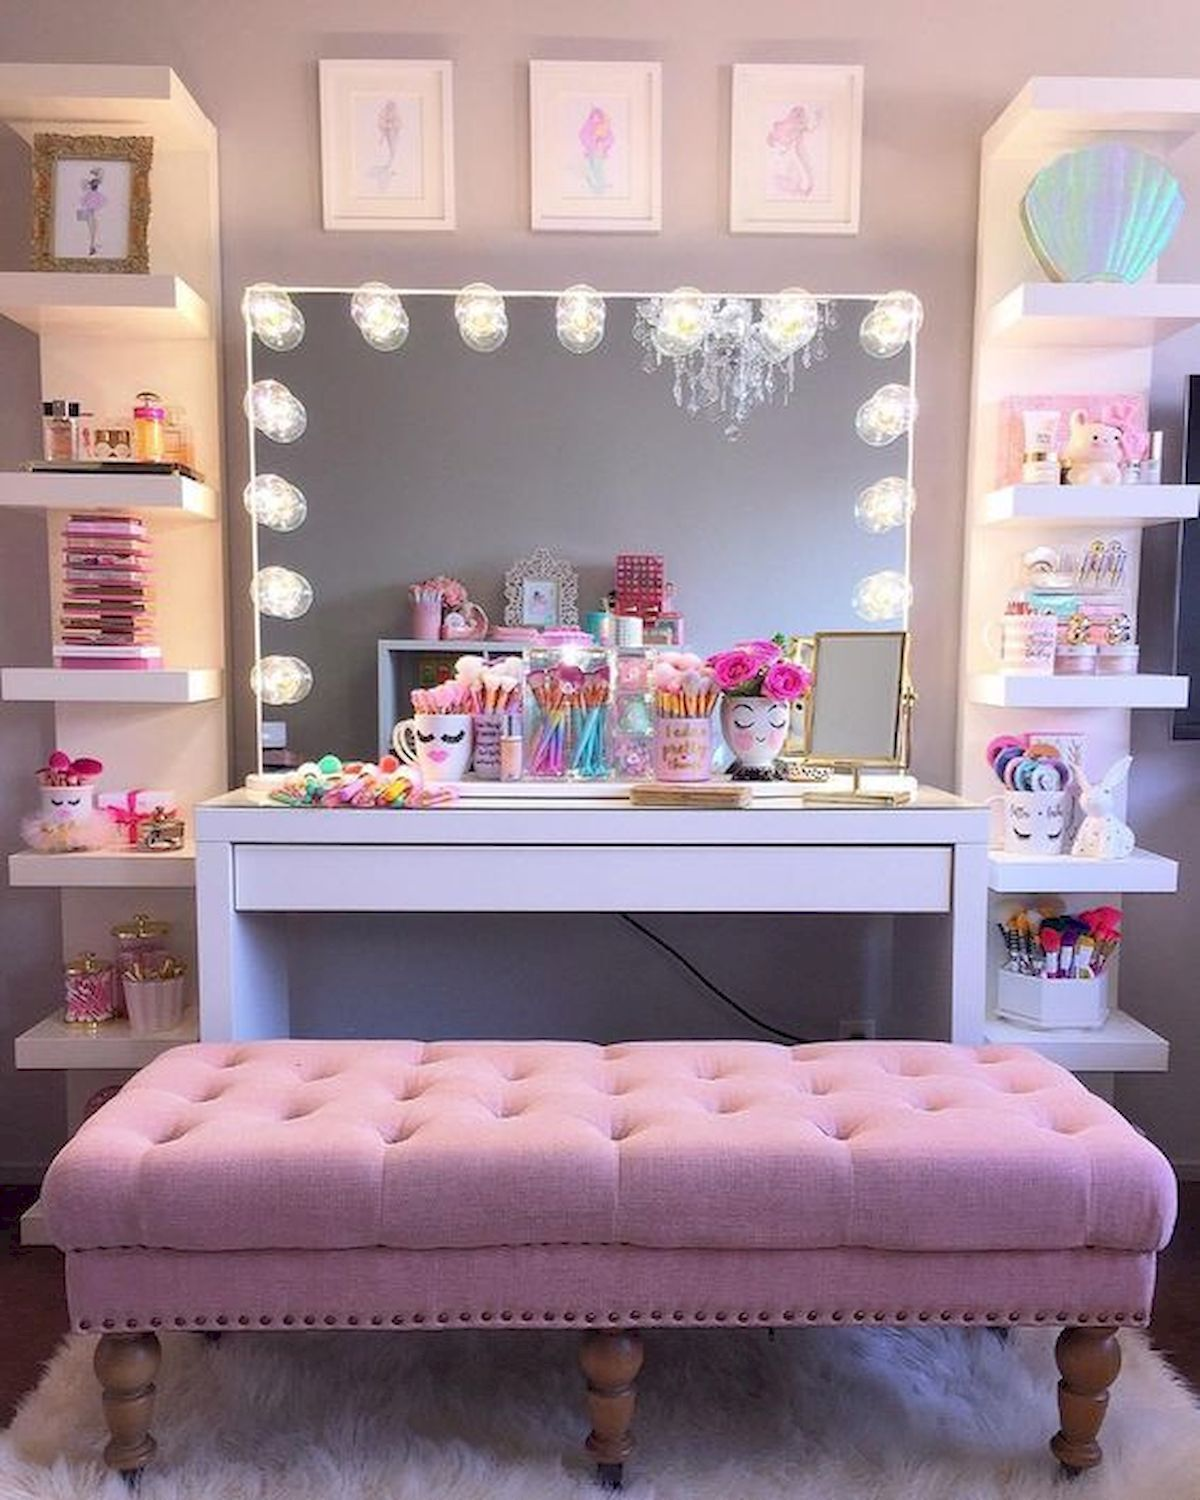 60 Lovely Makeup Rooms Decor Ideas And Remodel Makeup Room